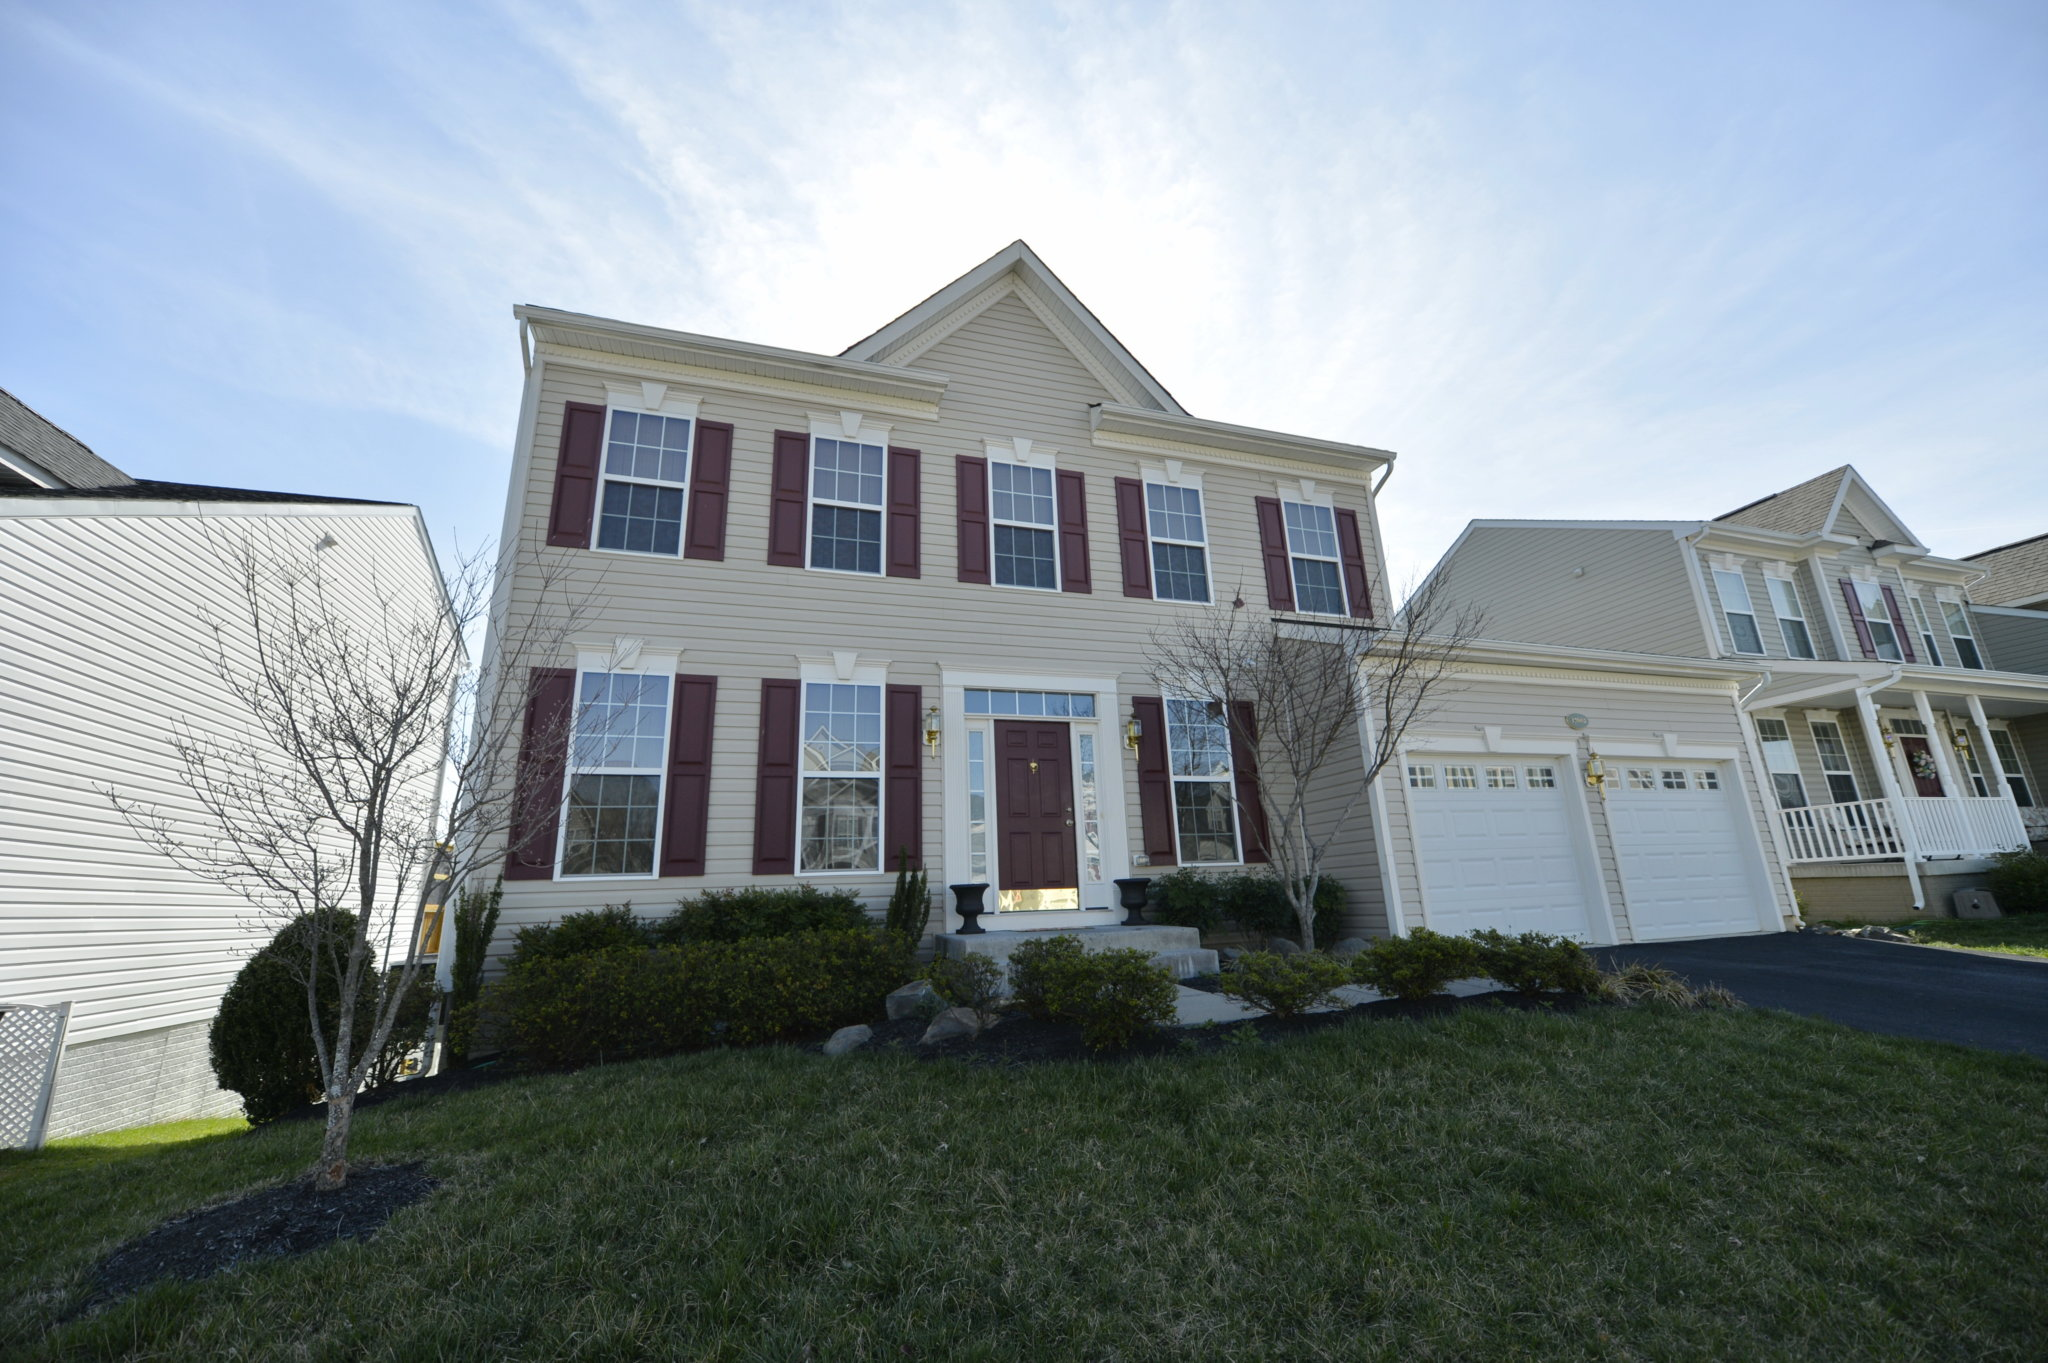 Image of Front of House at 17662 Cleveland Park Drive in Round Hill, Virginia